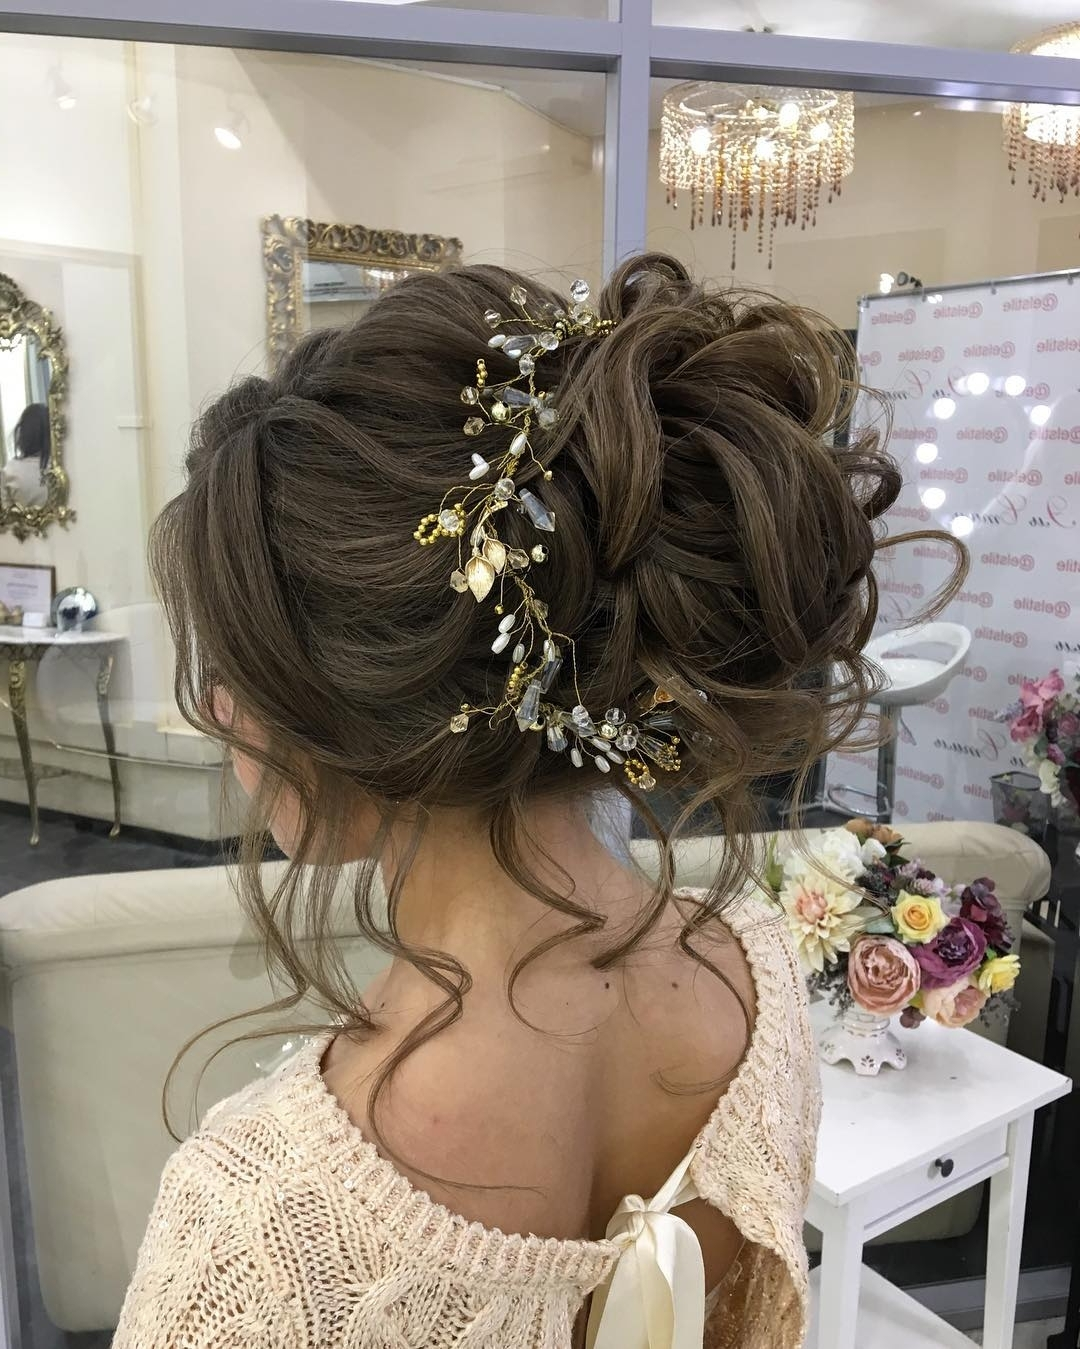 Style Up Messy Bun Hairstyle For Dramatic Romantic Bridal Beauty Within Popular Messy Bun Wedding Hairstyles (View 7 of 15)